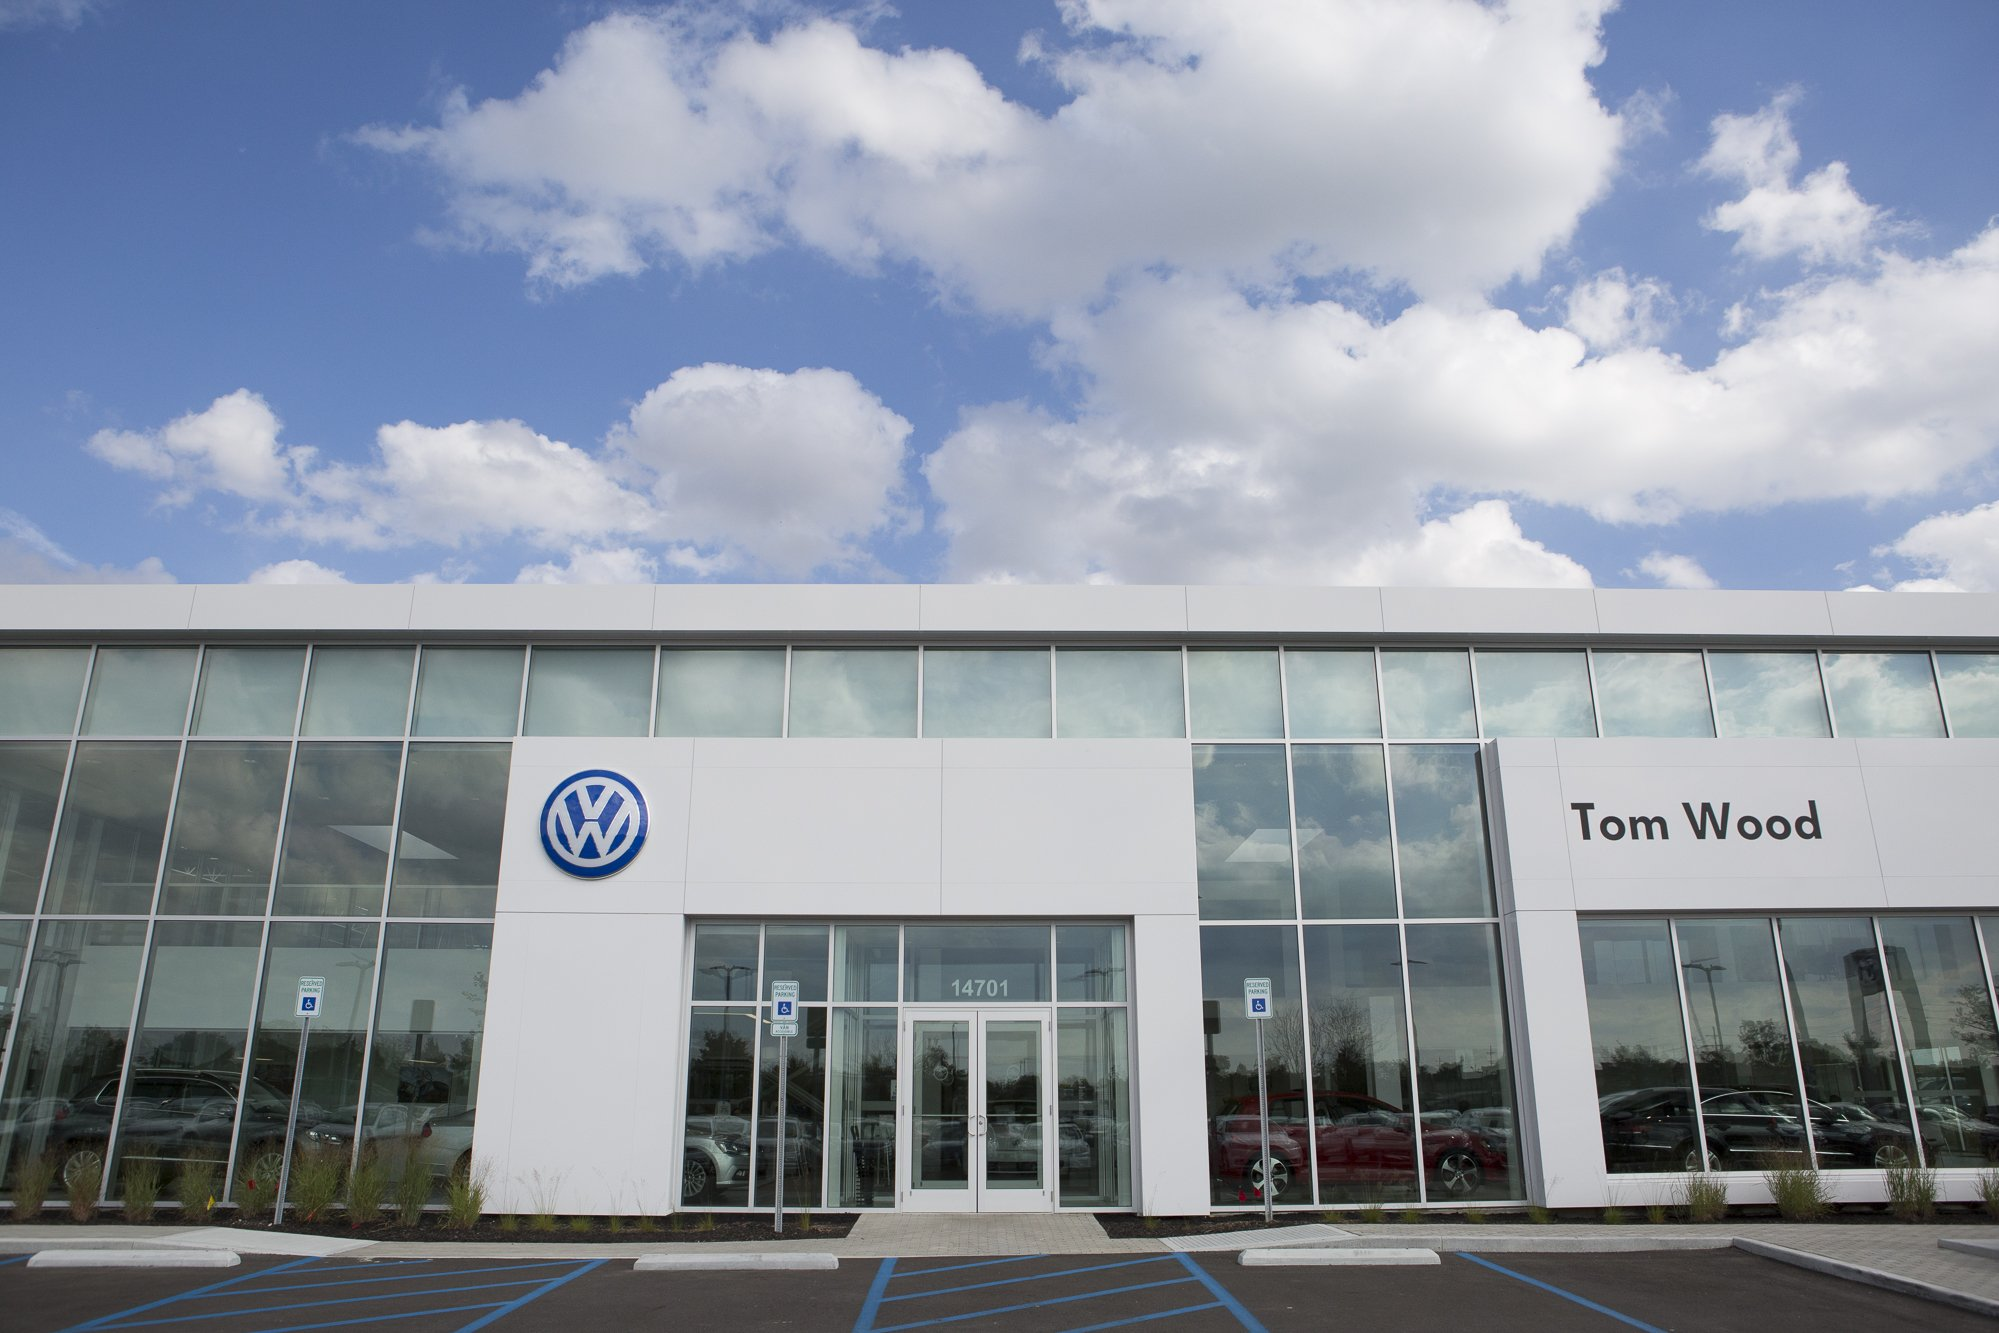 Tom Wood Volkswagon Fishers IN commercial photography session